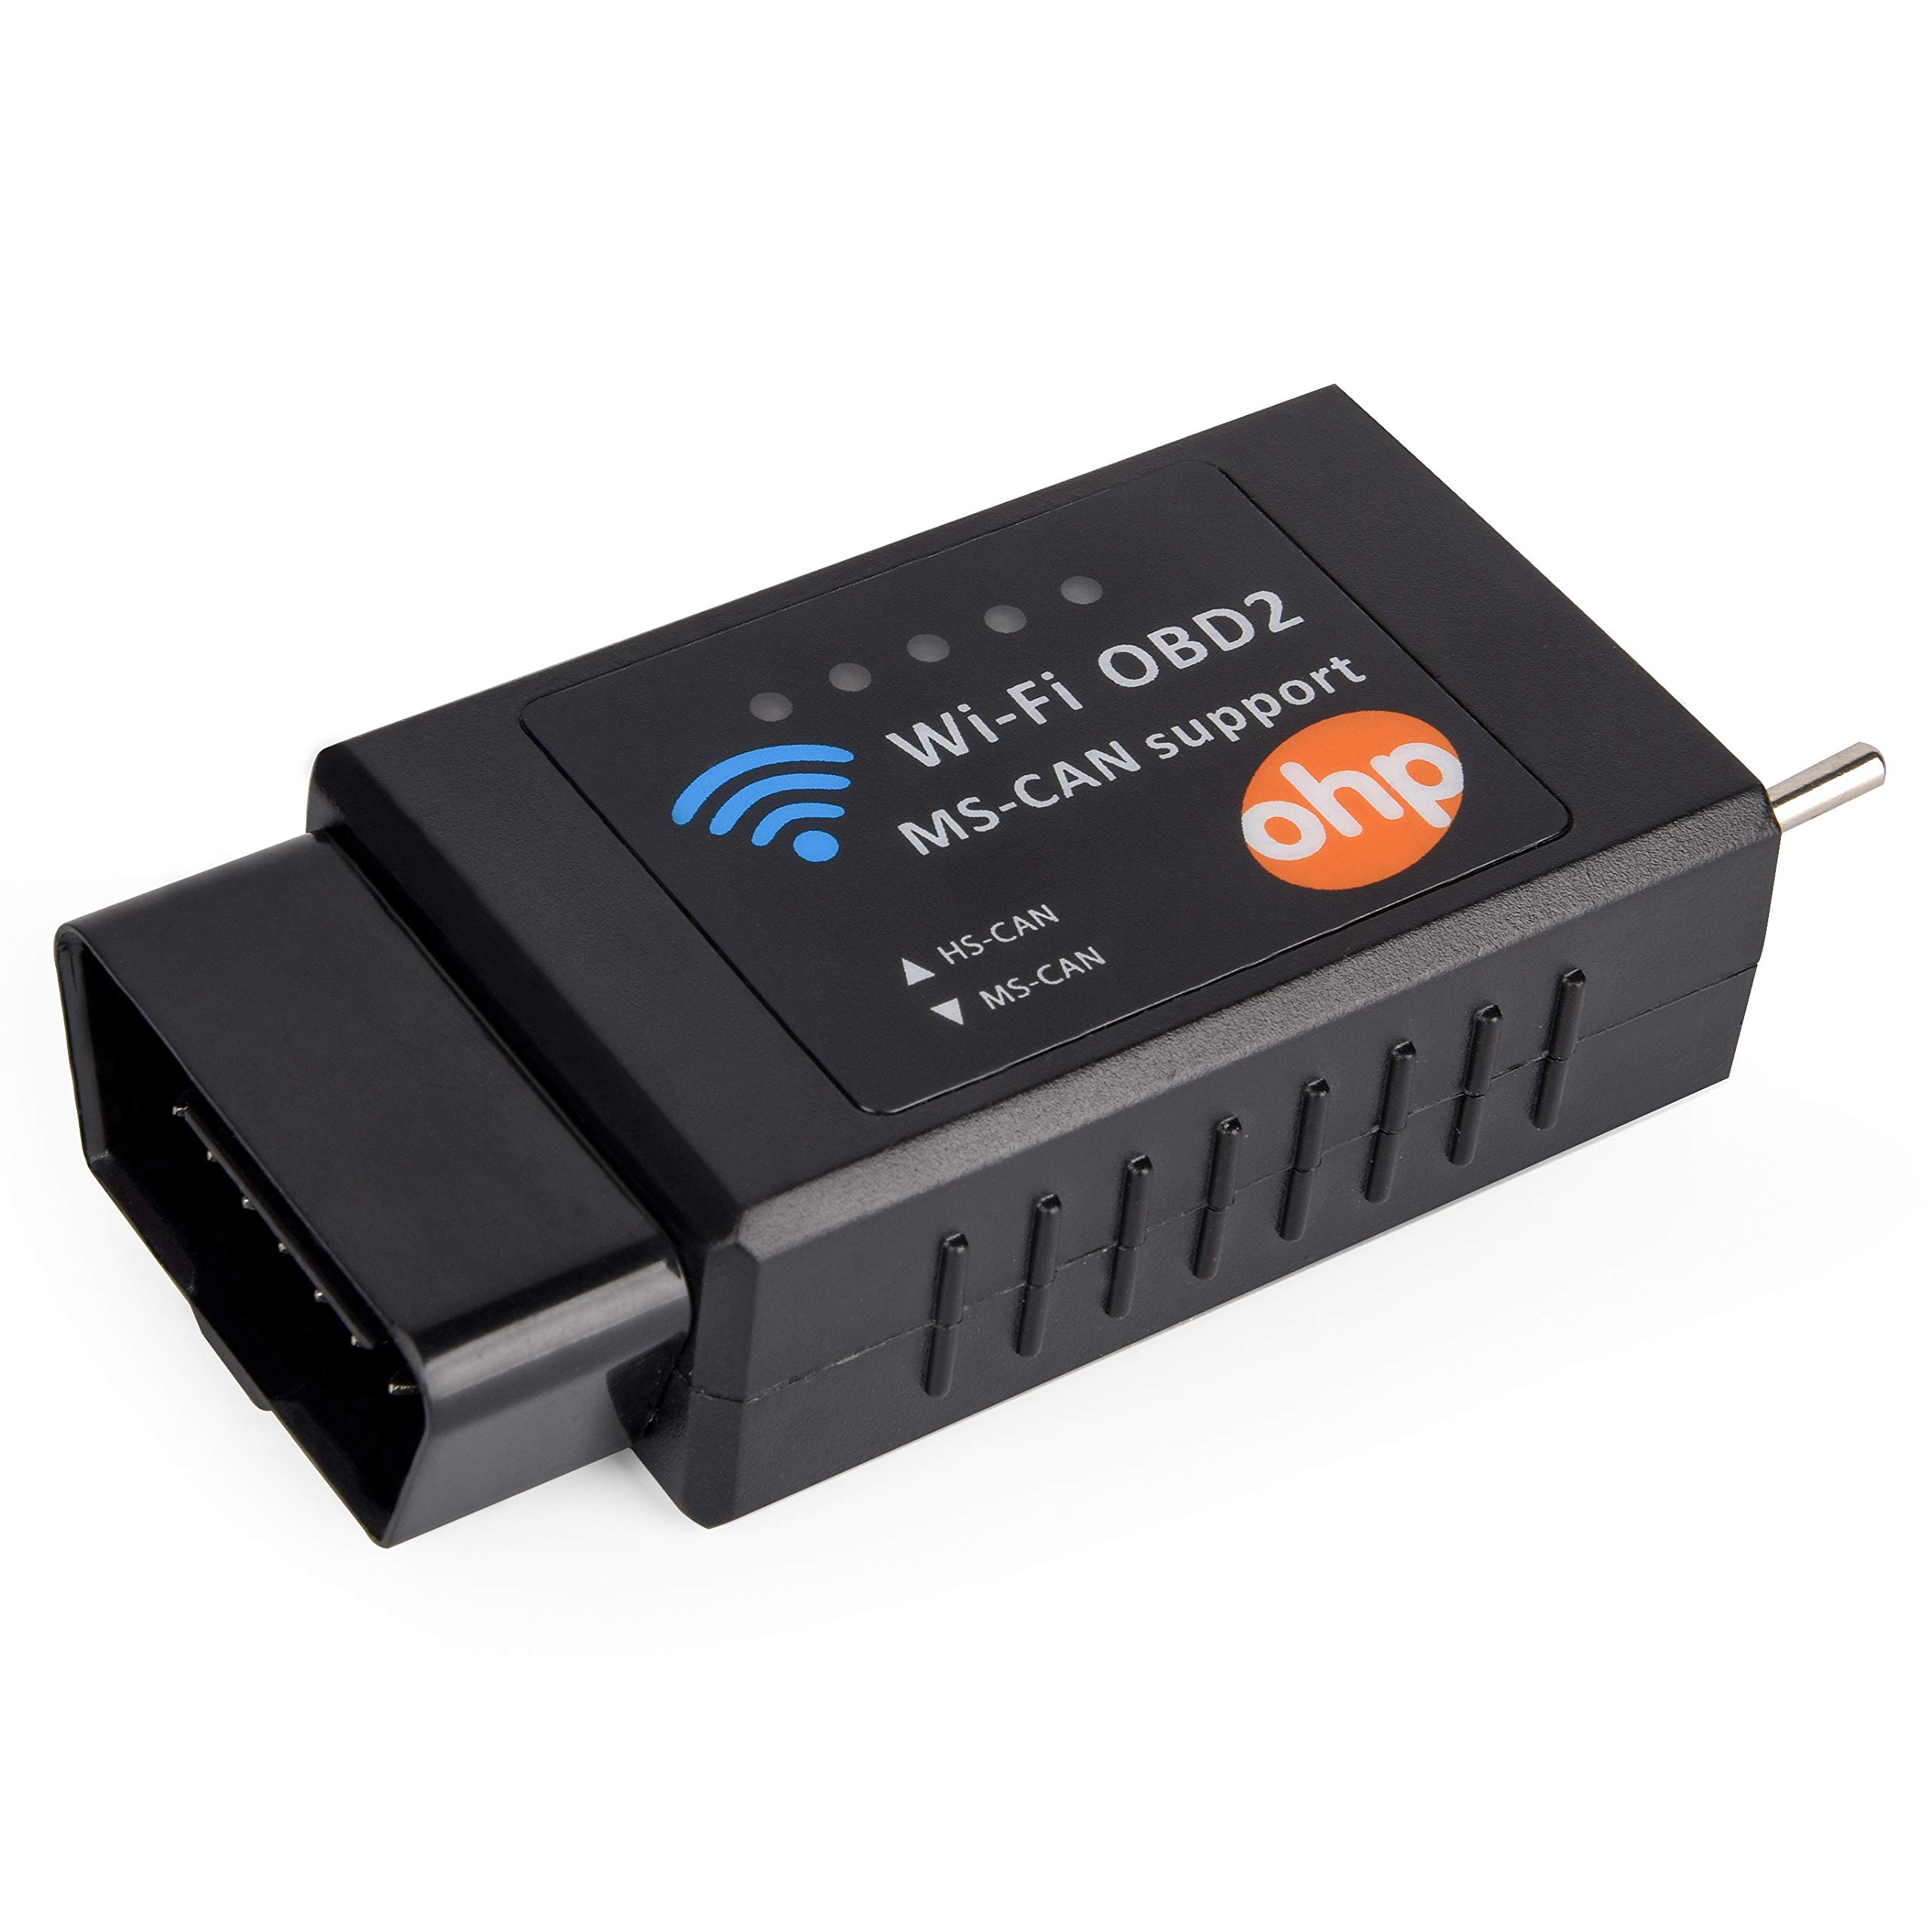 OHP WI-Fi OBD2 Diagnostics Code Reader Scanner (HS-Can/MS-Can Switch) - Forscan Compatible - Ford/Mazda Car Models - iOS, Windows, Android Devices